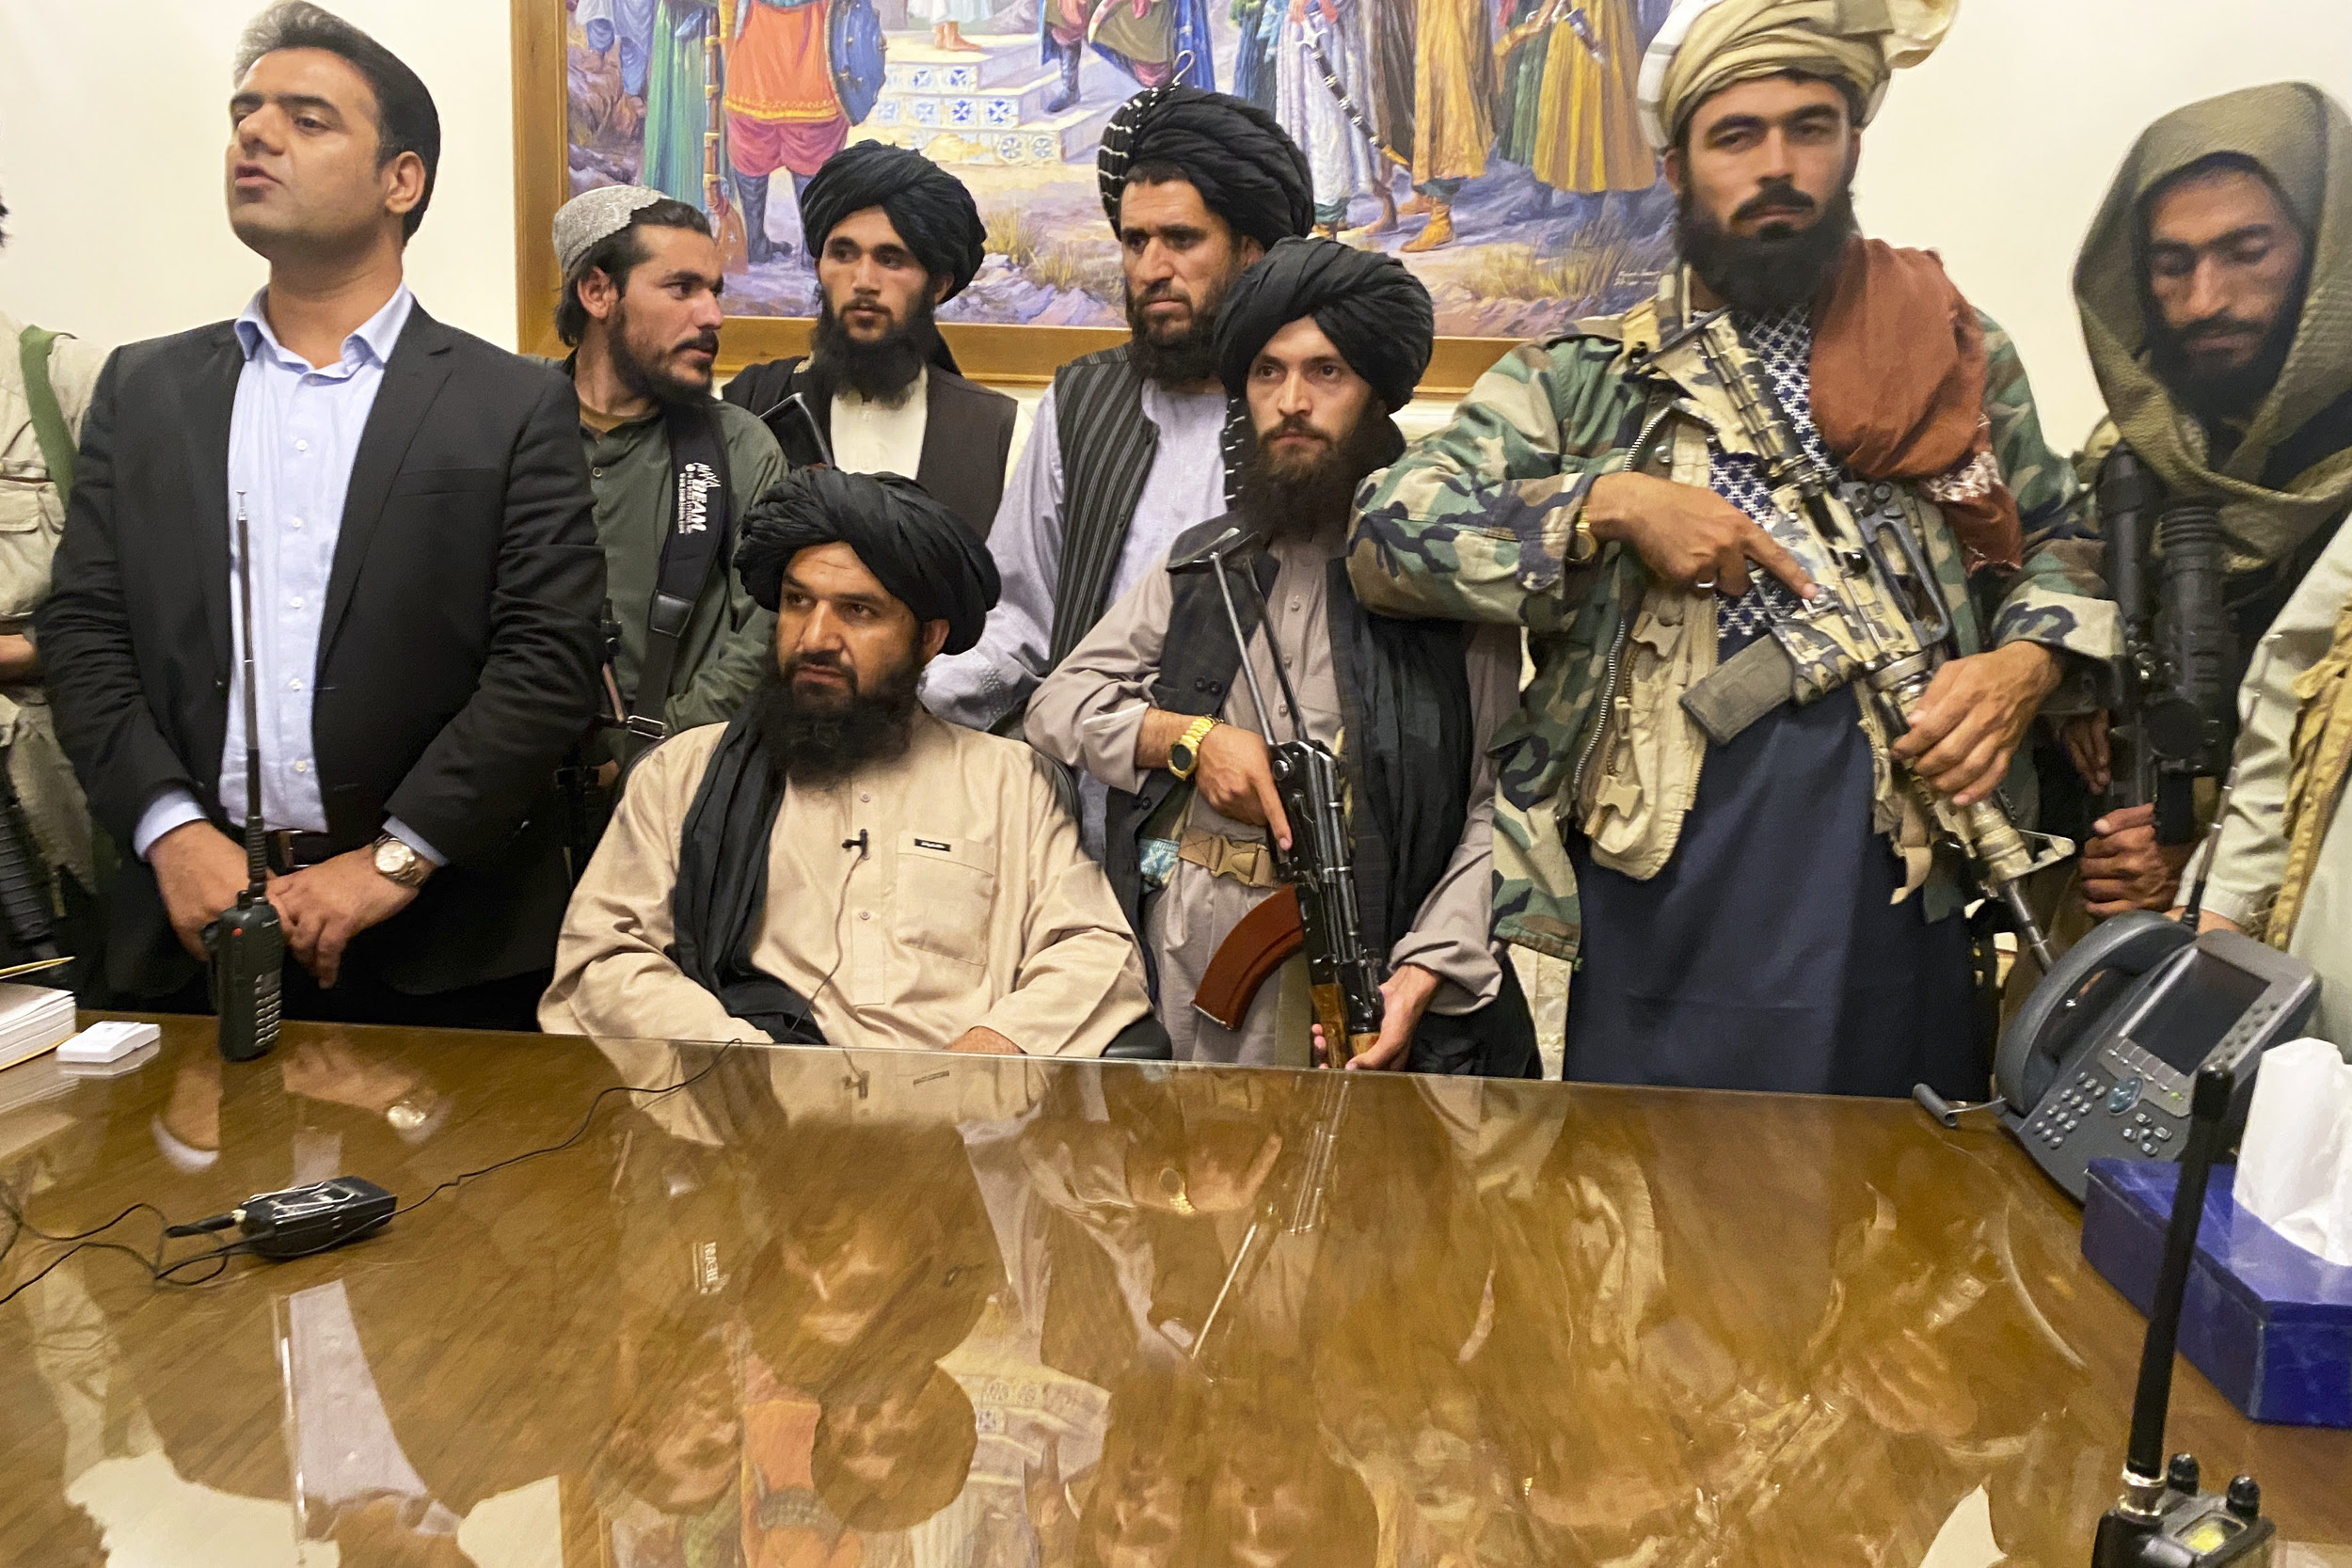 Why is Biden relying on the Taliban for the